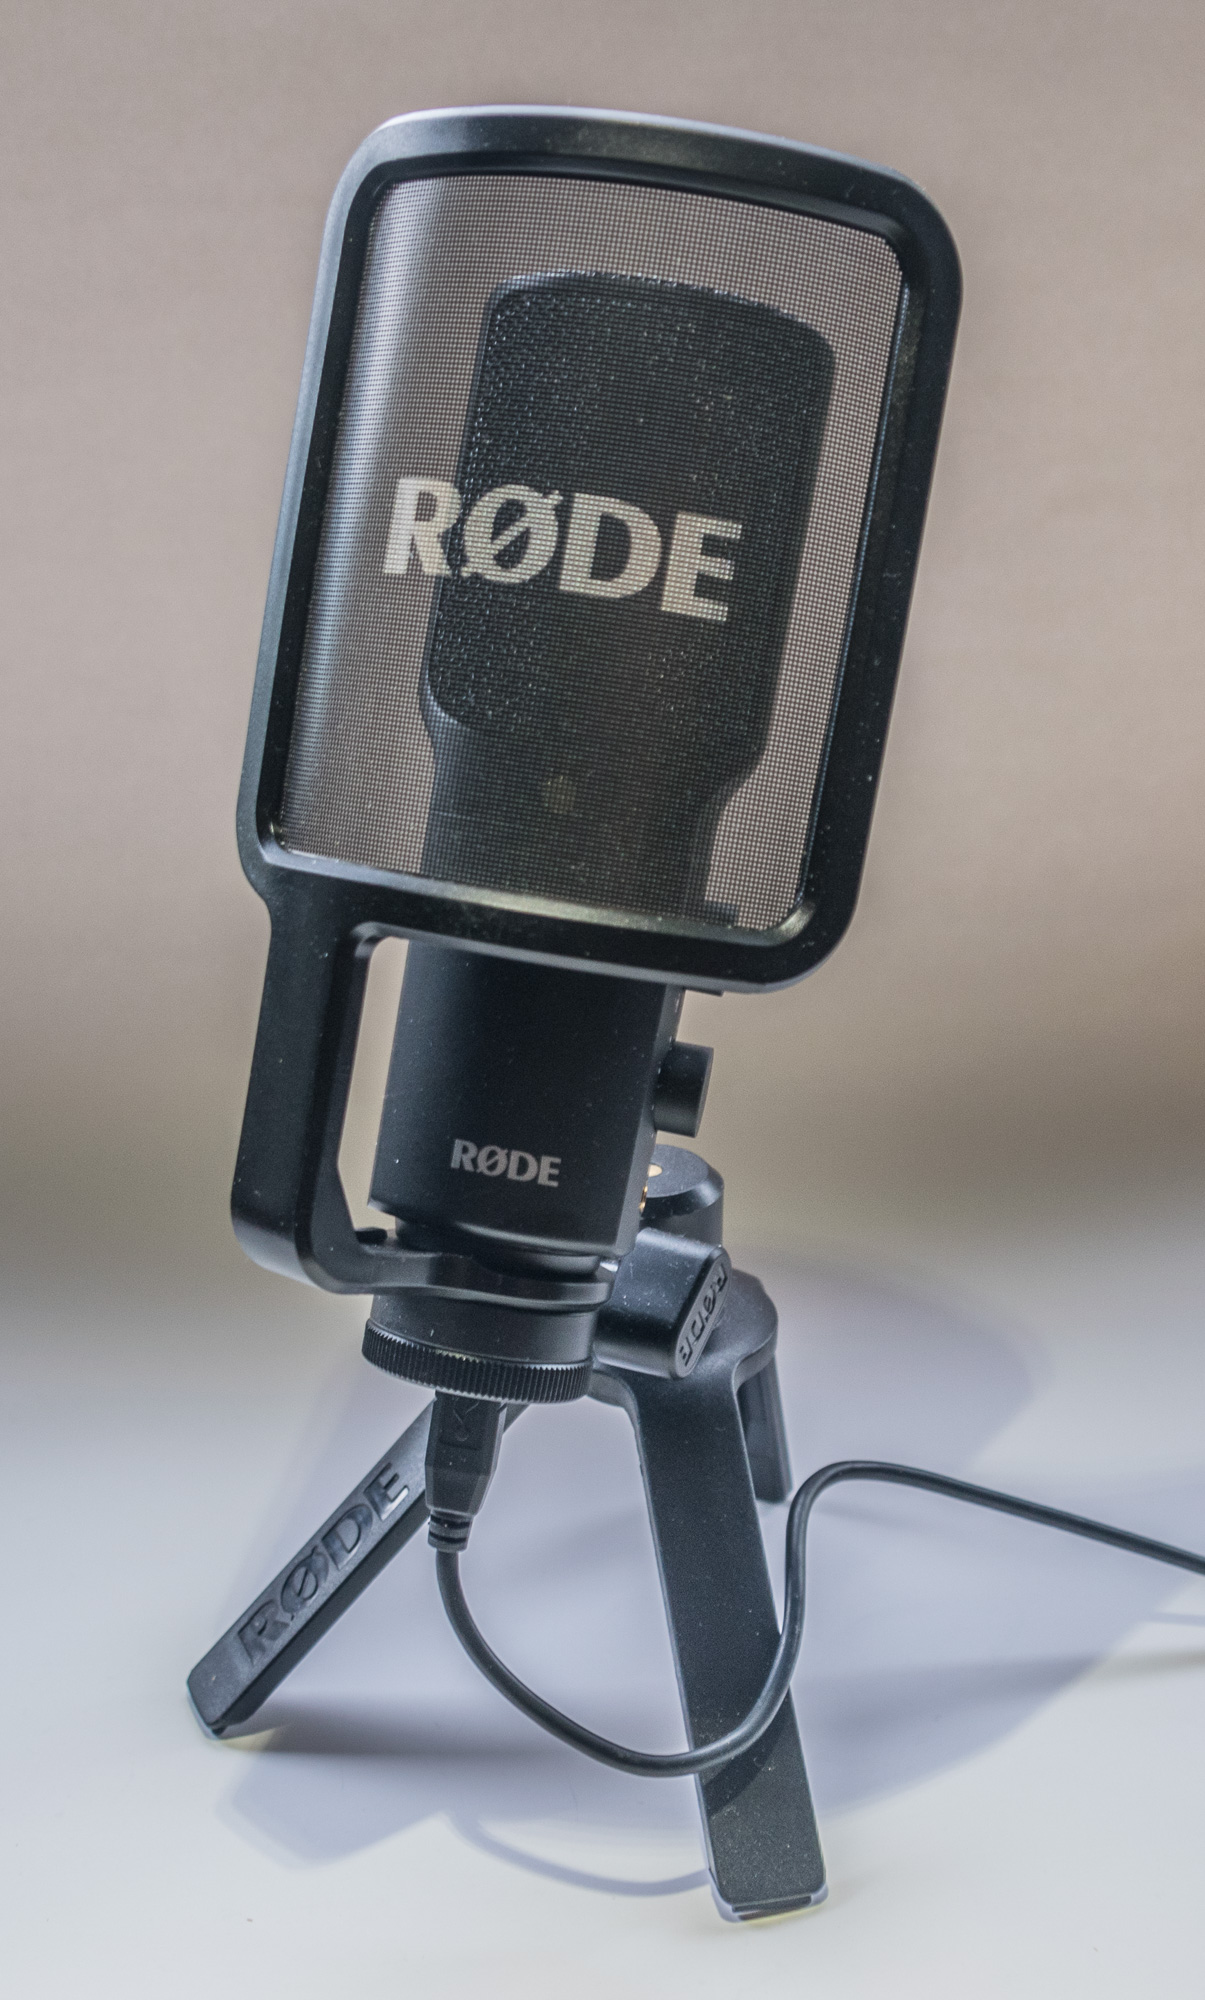 rode nt usb for studio quality recording anywhere doug bardwell. Black Bedroom Furniture Sets. Home Design Ideas